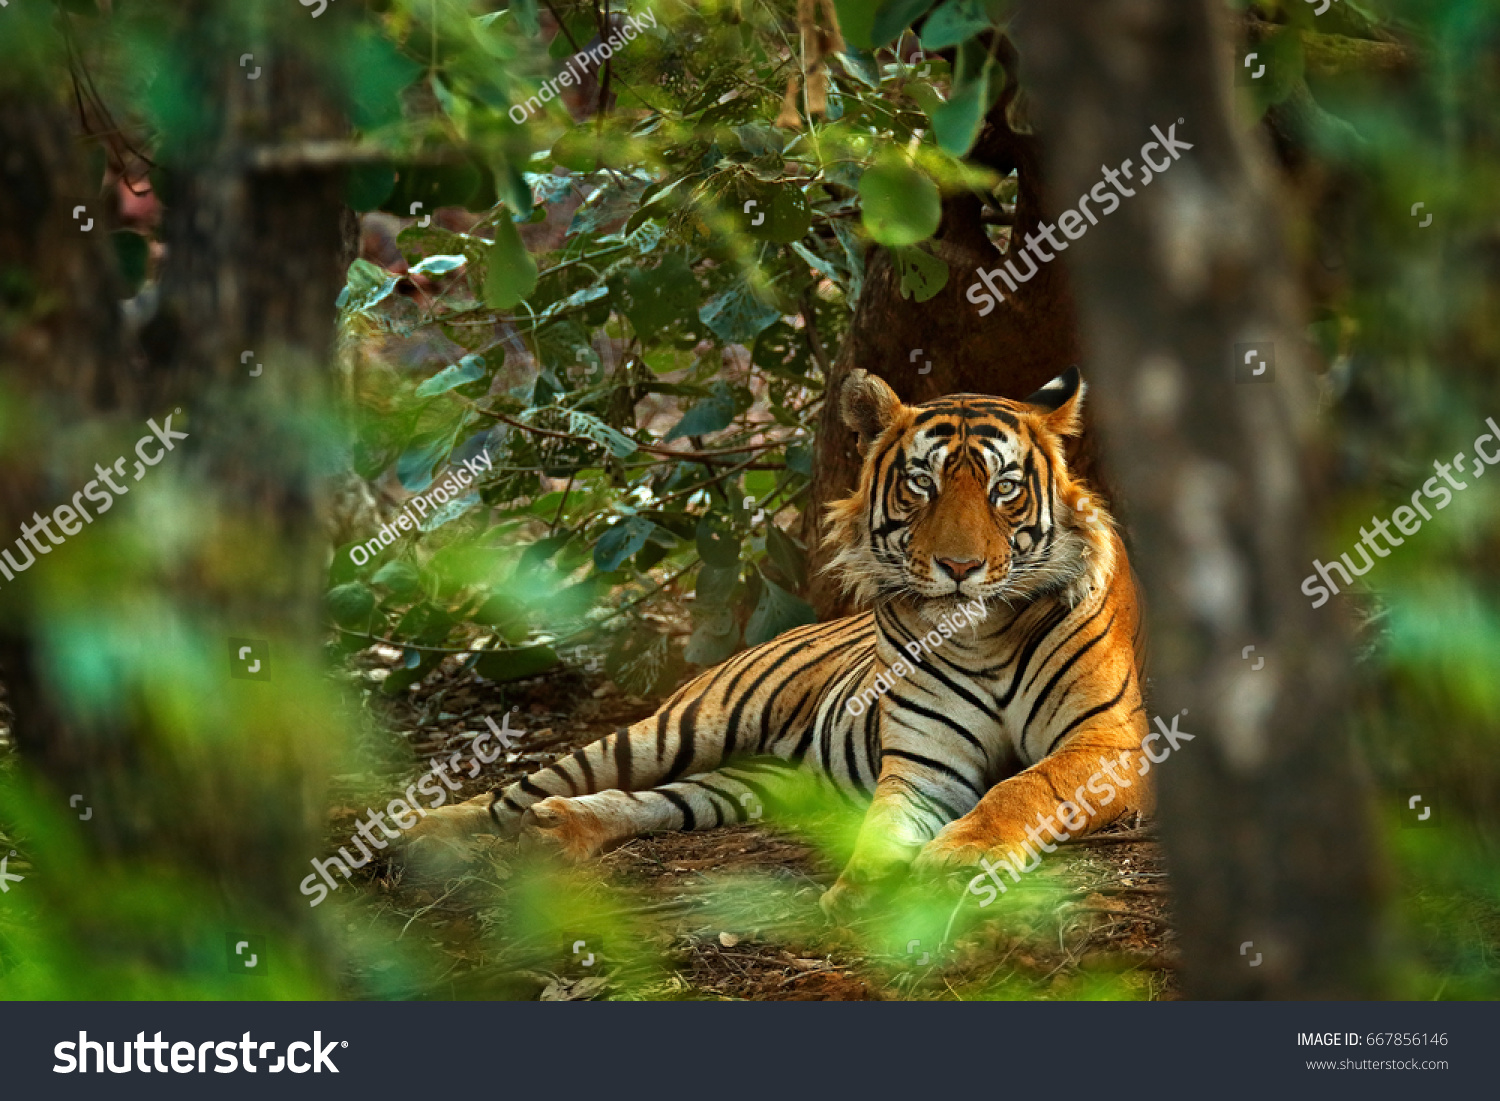 Indian tiger male with first rain, wild animal in the nature habitat, Ranthambore, India. Big cat, endangered animal. End of dry season, beginning monsoon. #667856146